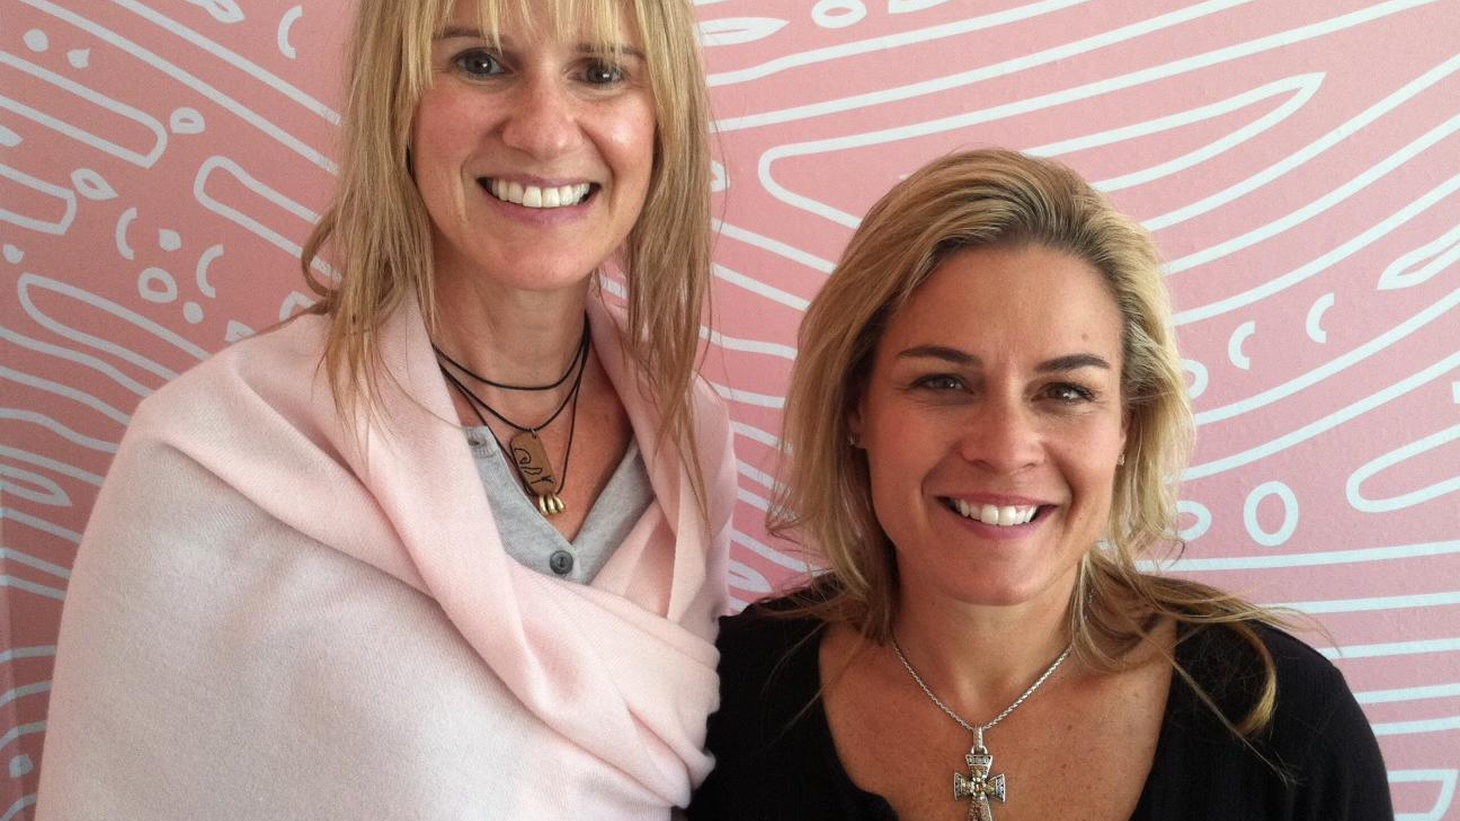 Celebrity chef Cat Cora is best known as a fierce competitor on the Food Network show Iron Chef America. It's clear in her Guest DJ set that her determination in the kitchen is offset by all the love in her home. Her Guest DJ set is a love letter to her family that spans country, classic soul and more. She also touches on her Greek heritage and the deep connection between food and music.